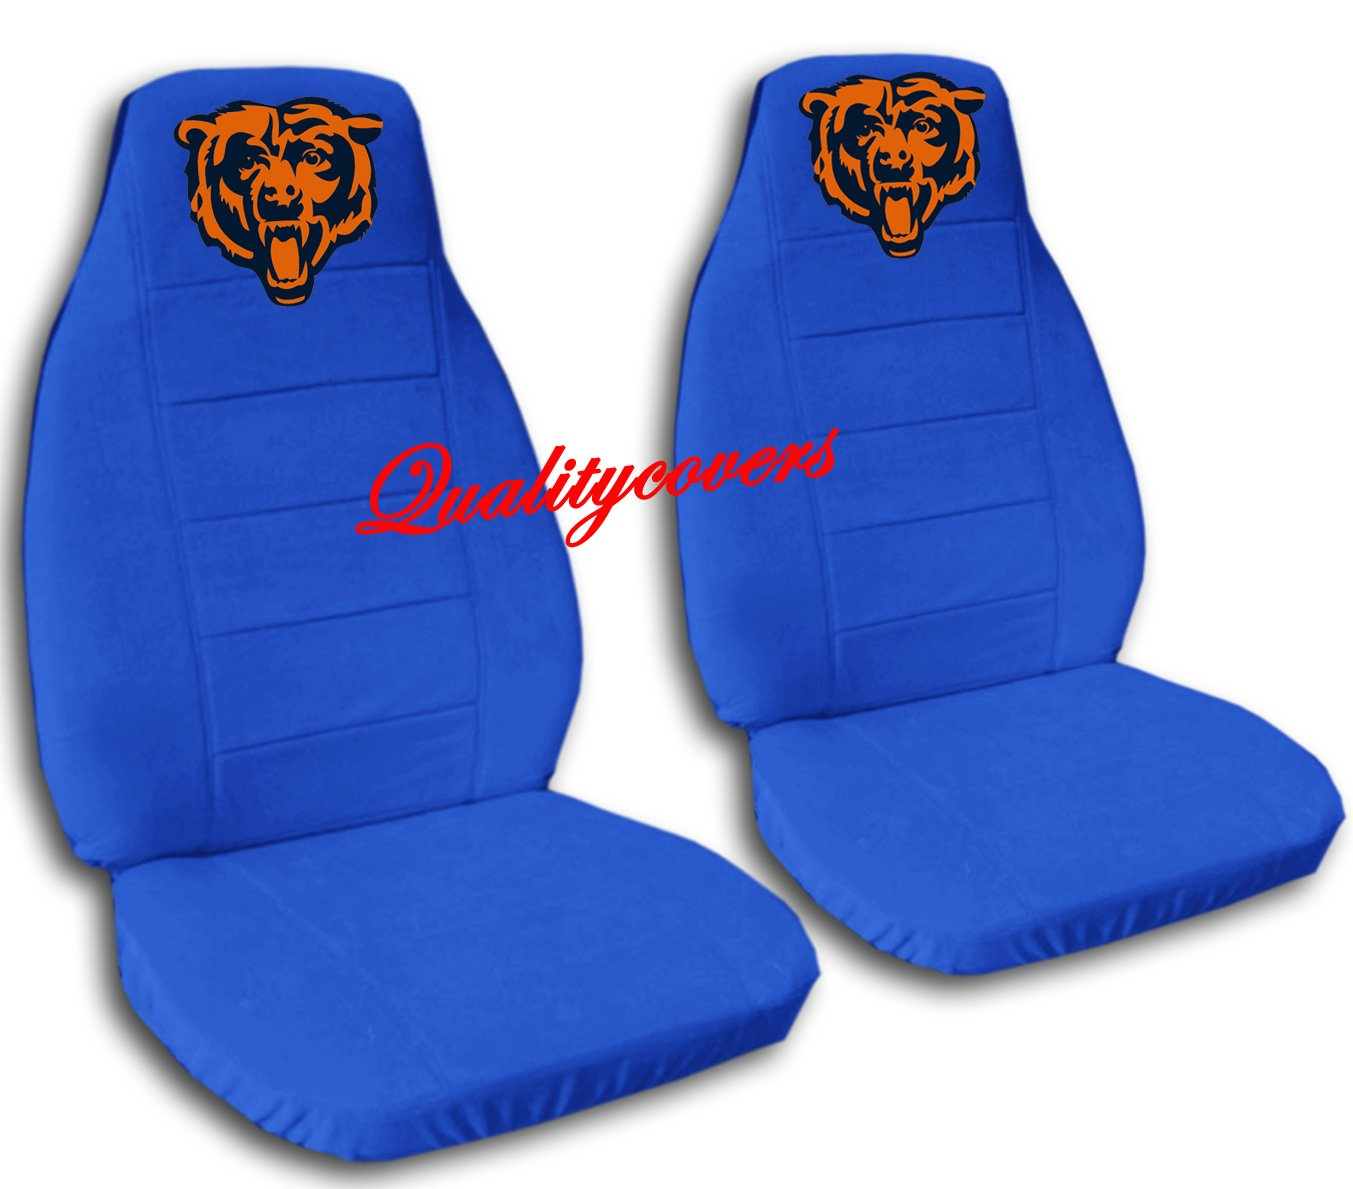 2 Medium Blue Chicago seat covers for a 2007 to 2012 Ford Fusion. Side airbag friendly.